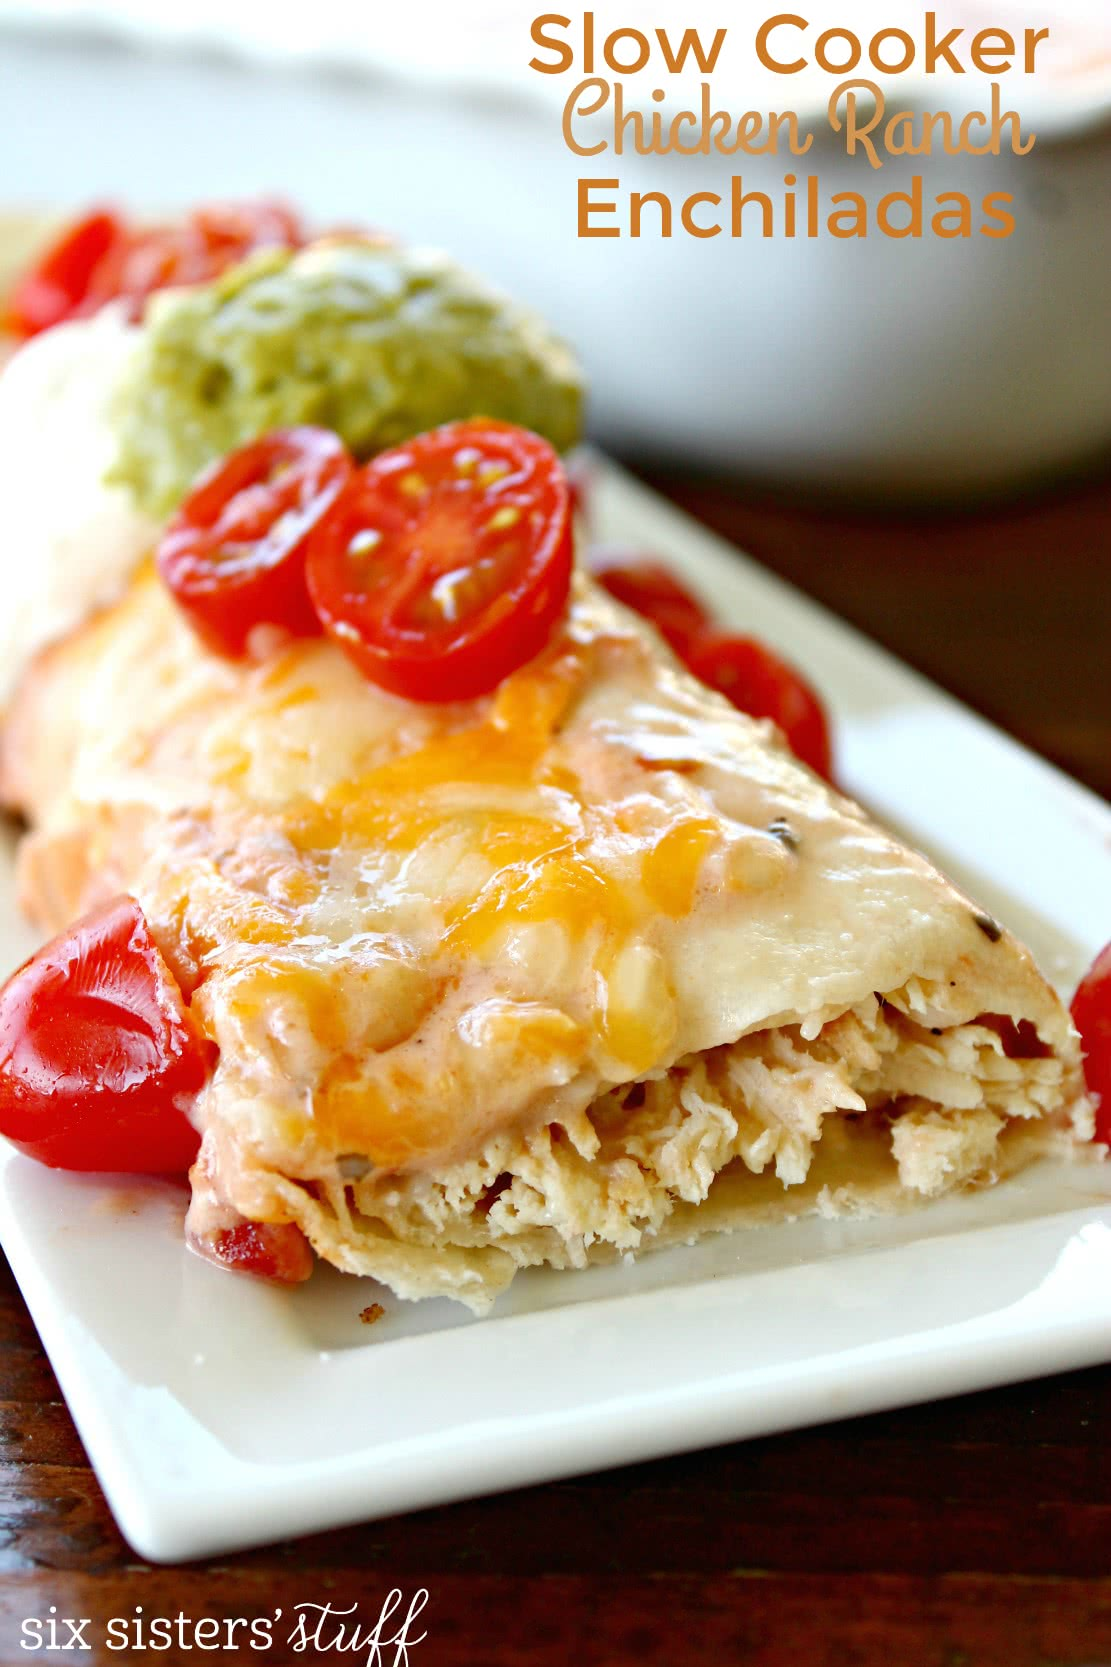 Slow Cooker Chicken Ranch Enchiladas Recipe